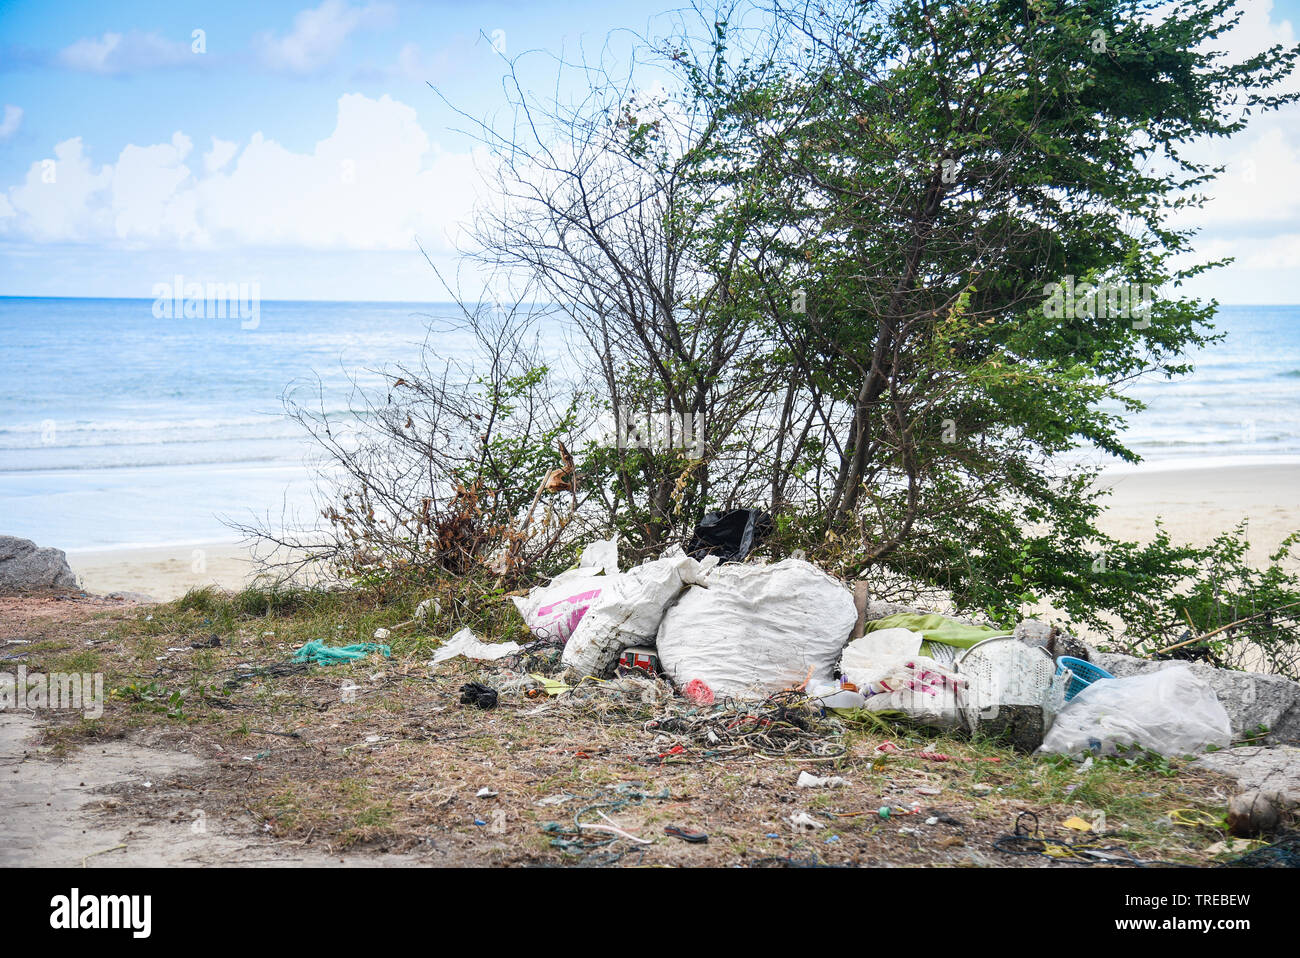 Garbage in the sea with bag plastic bottle and other garbage beach sandy dirty sea on the island / Environmental problem of plastic rubbish pollution - Stock Image